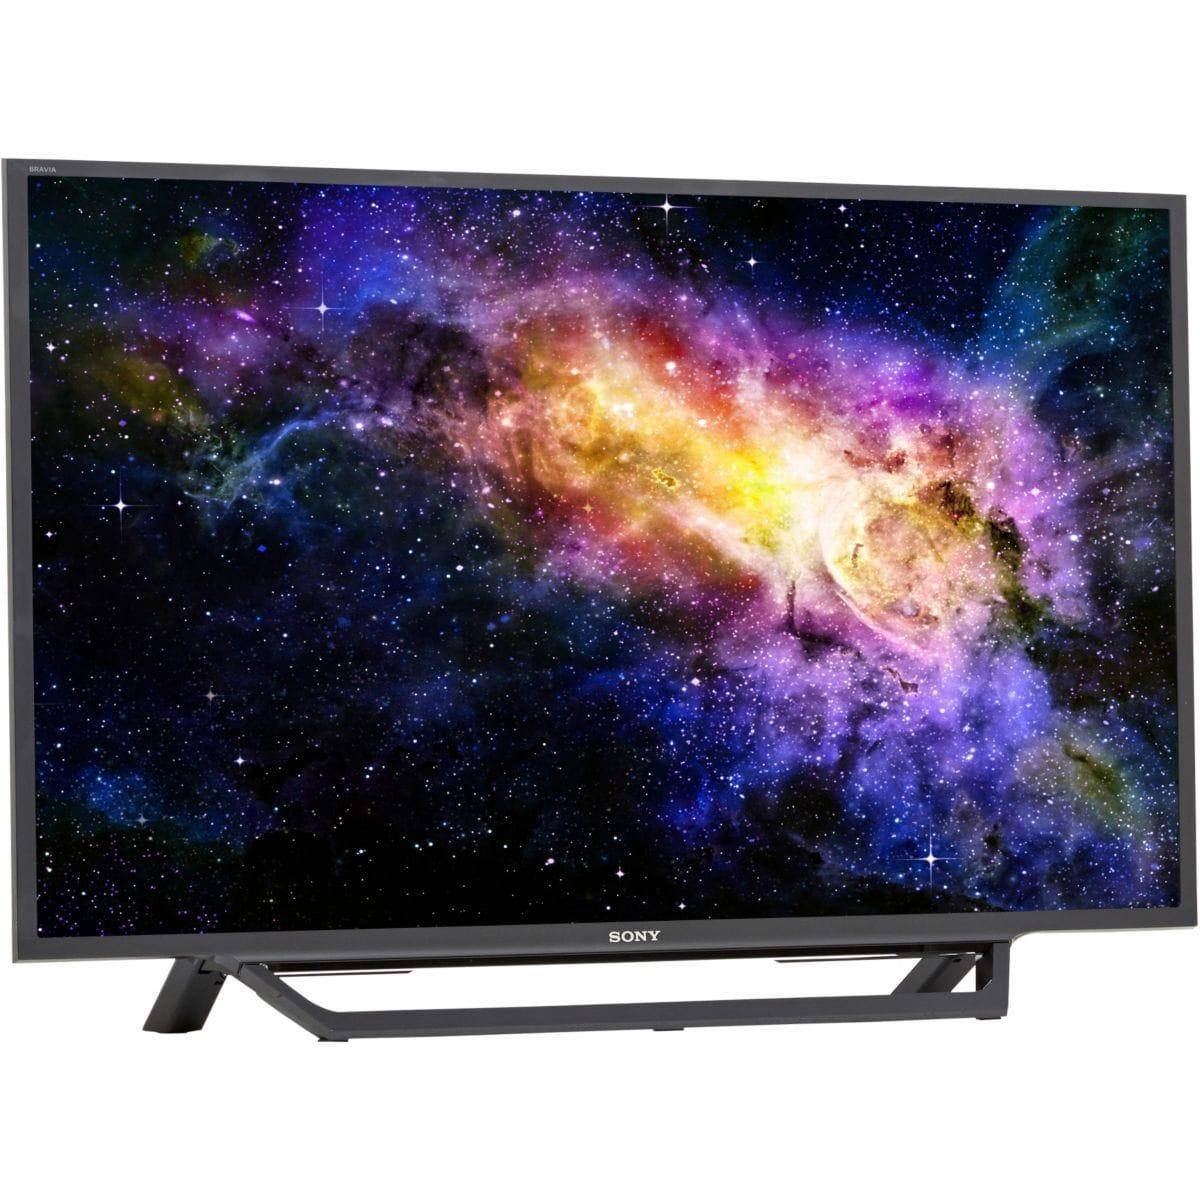 Sony Smart TV LED Full HD 102 cm Sony KDL40WD650